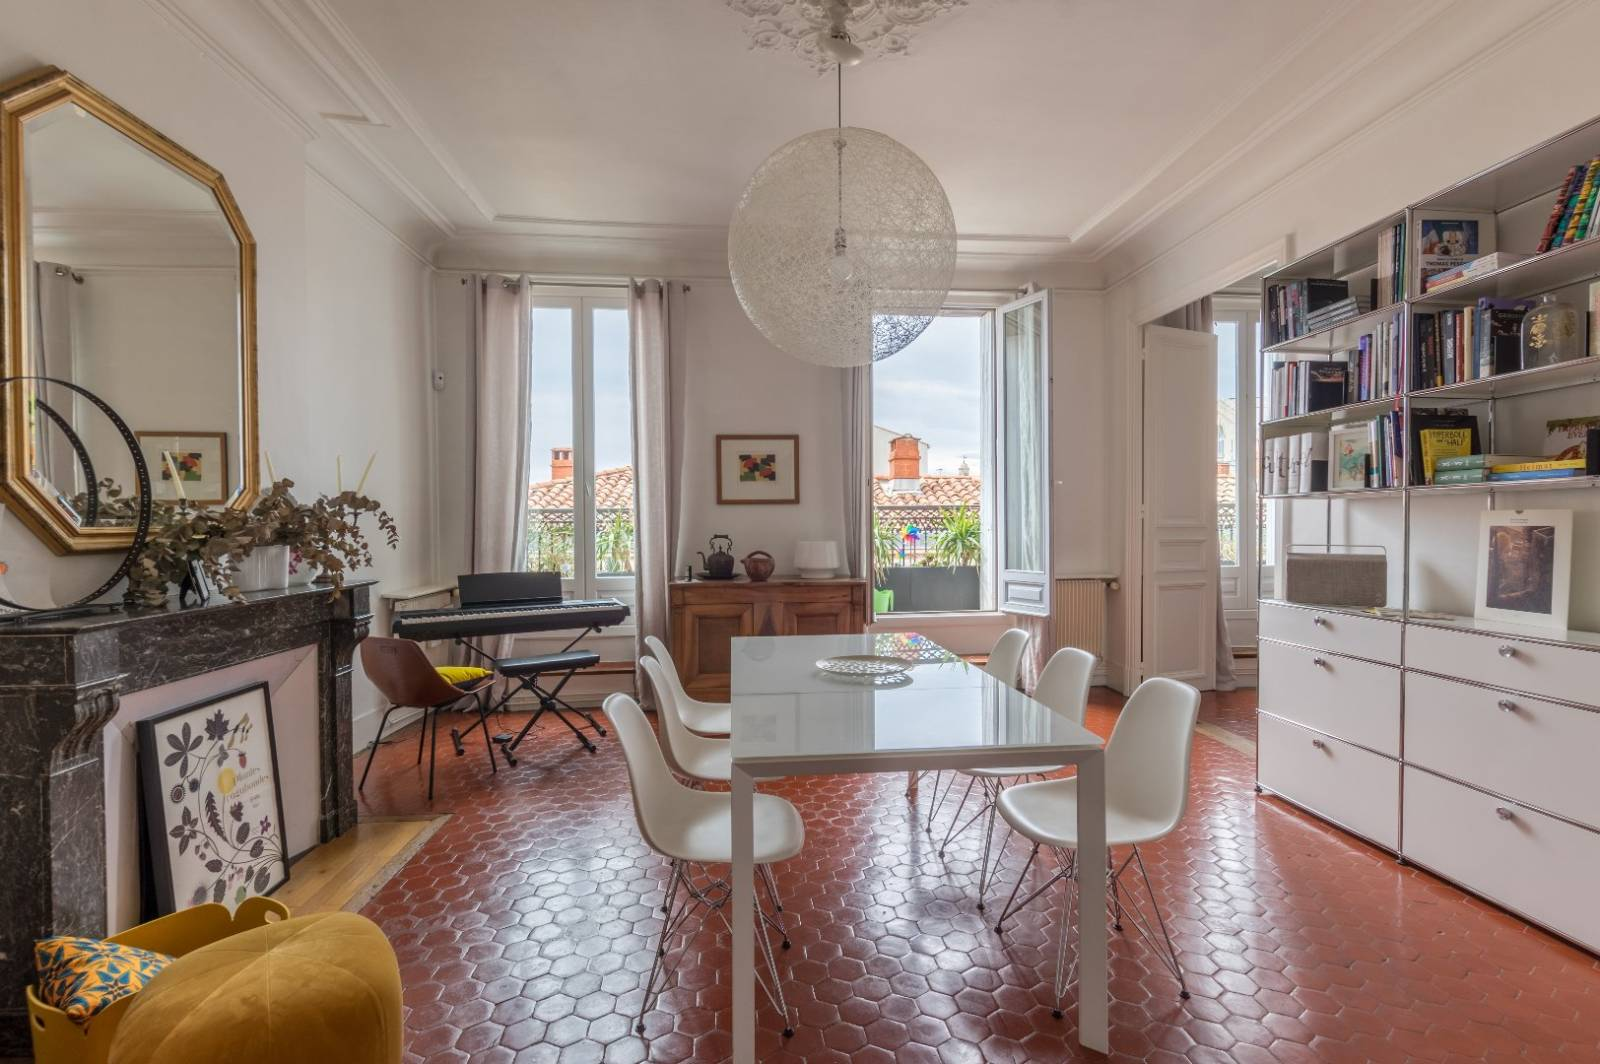 appartement bourgeois avec cheminees